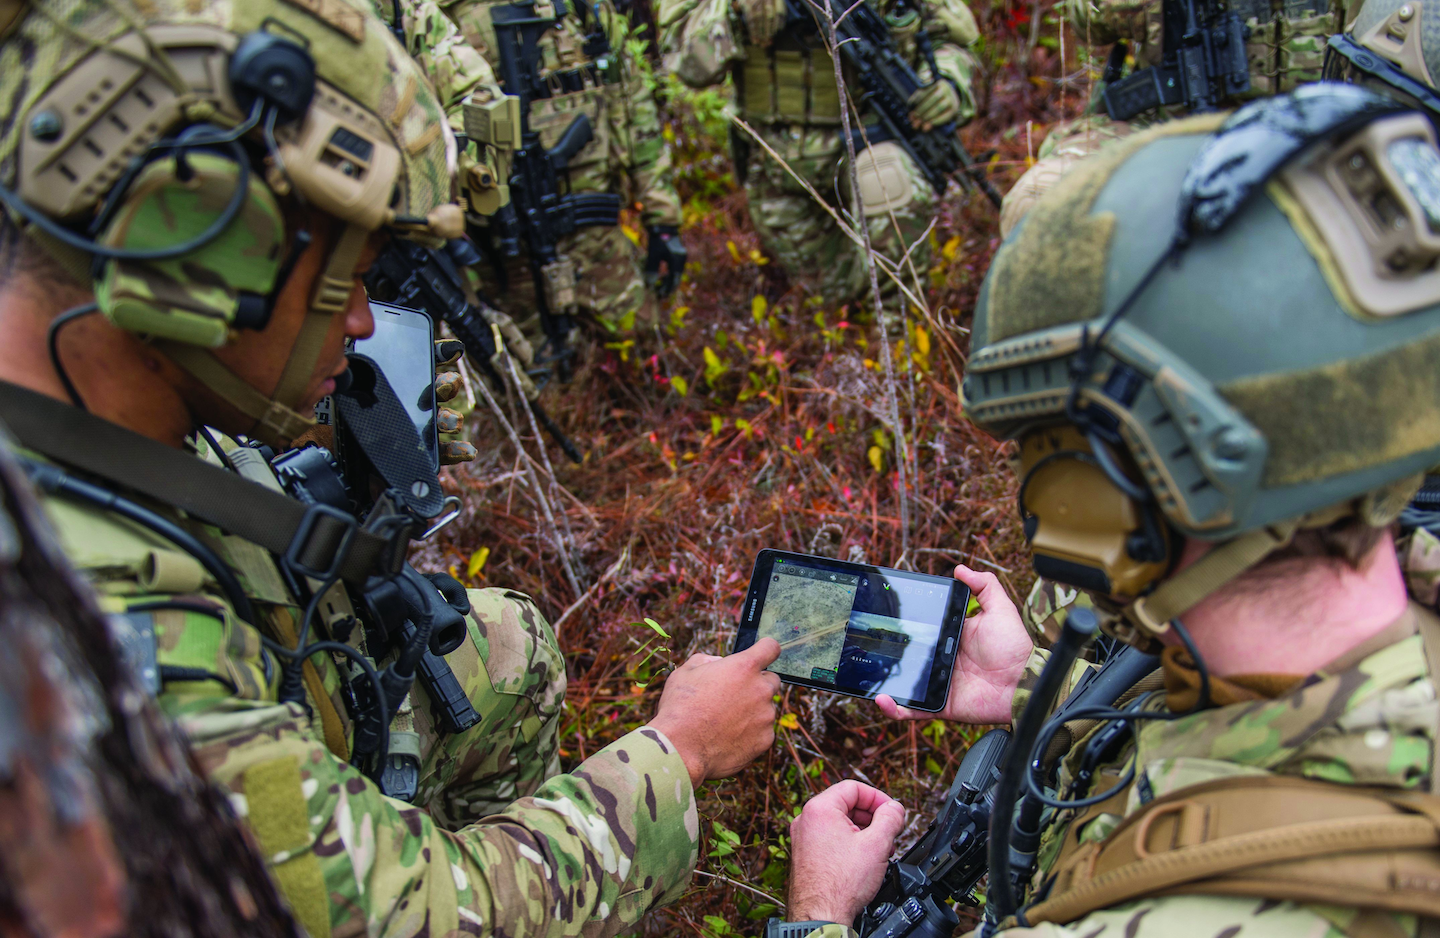 Special Operations cyber warfighters upload coordinates during an exercise showcasing the capabilities of the Advanced Battle Management System. Cyber security is crucial for sensitive battle-management systems.